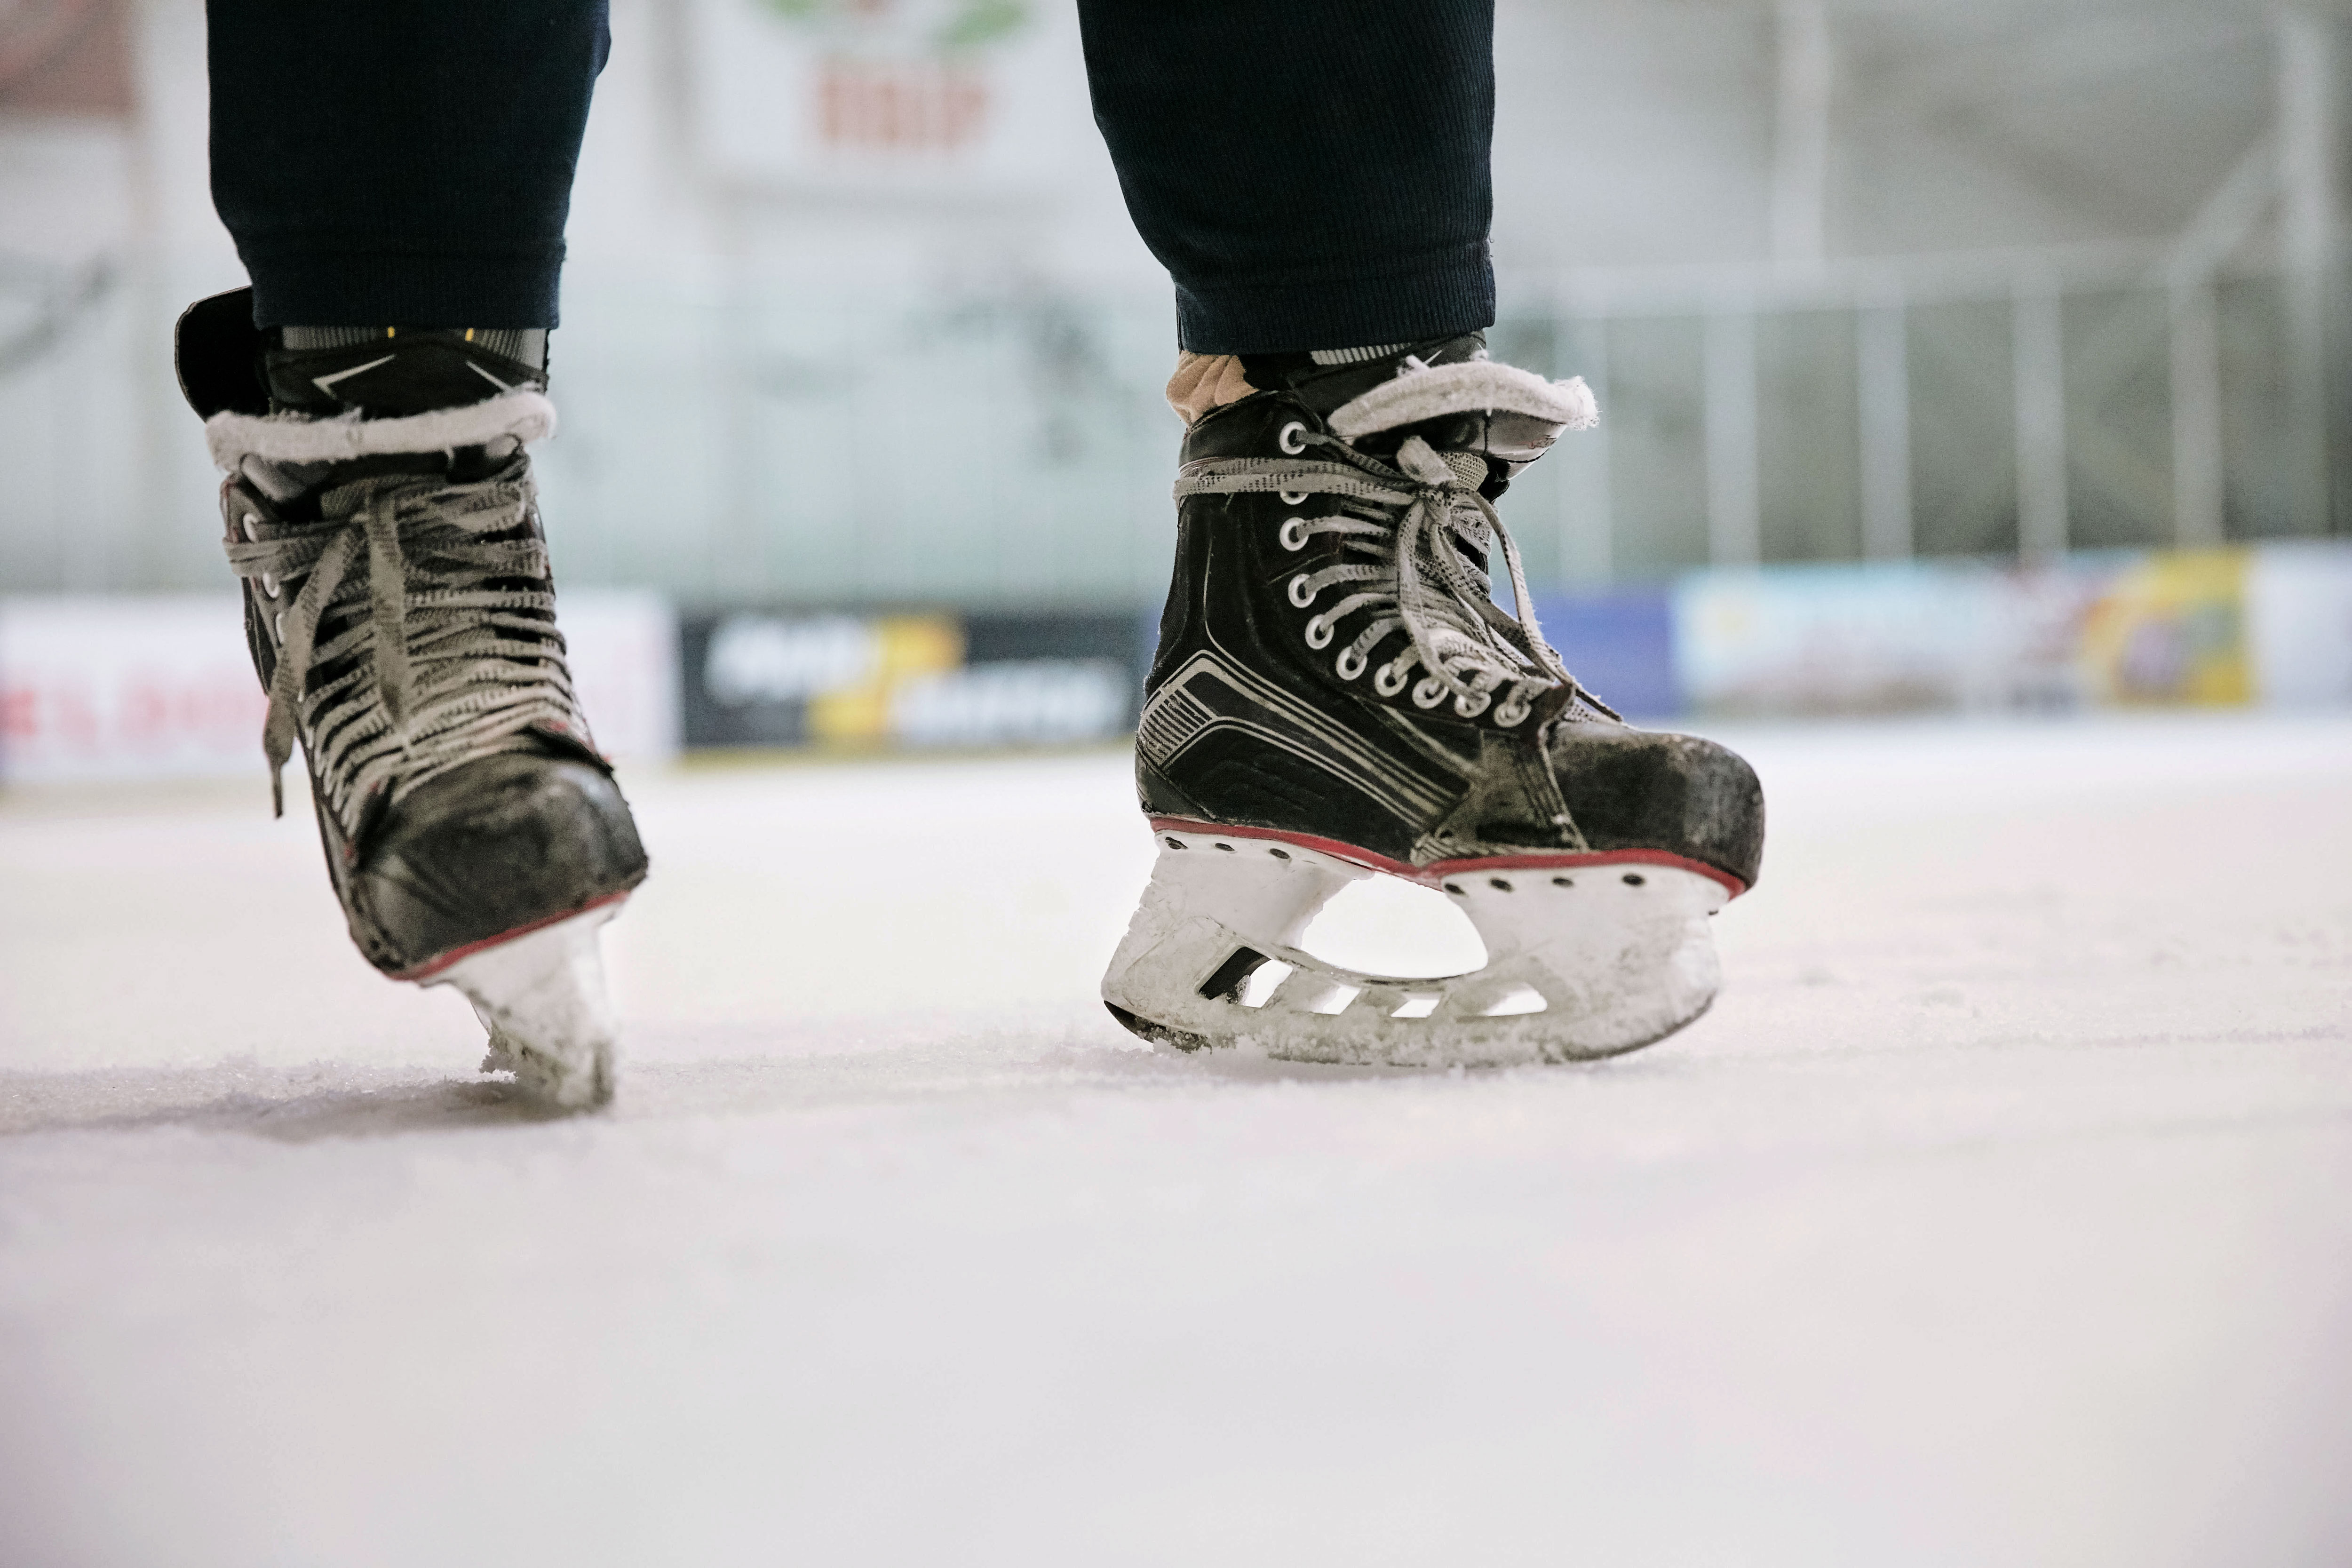 Ice skating rink is open!